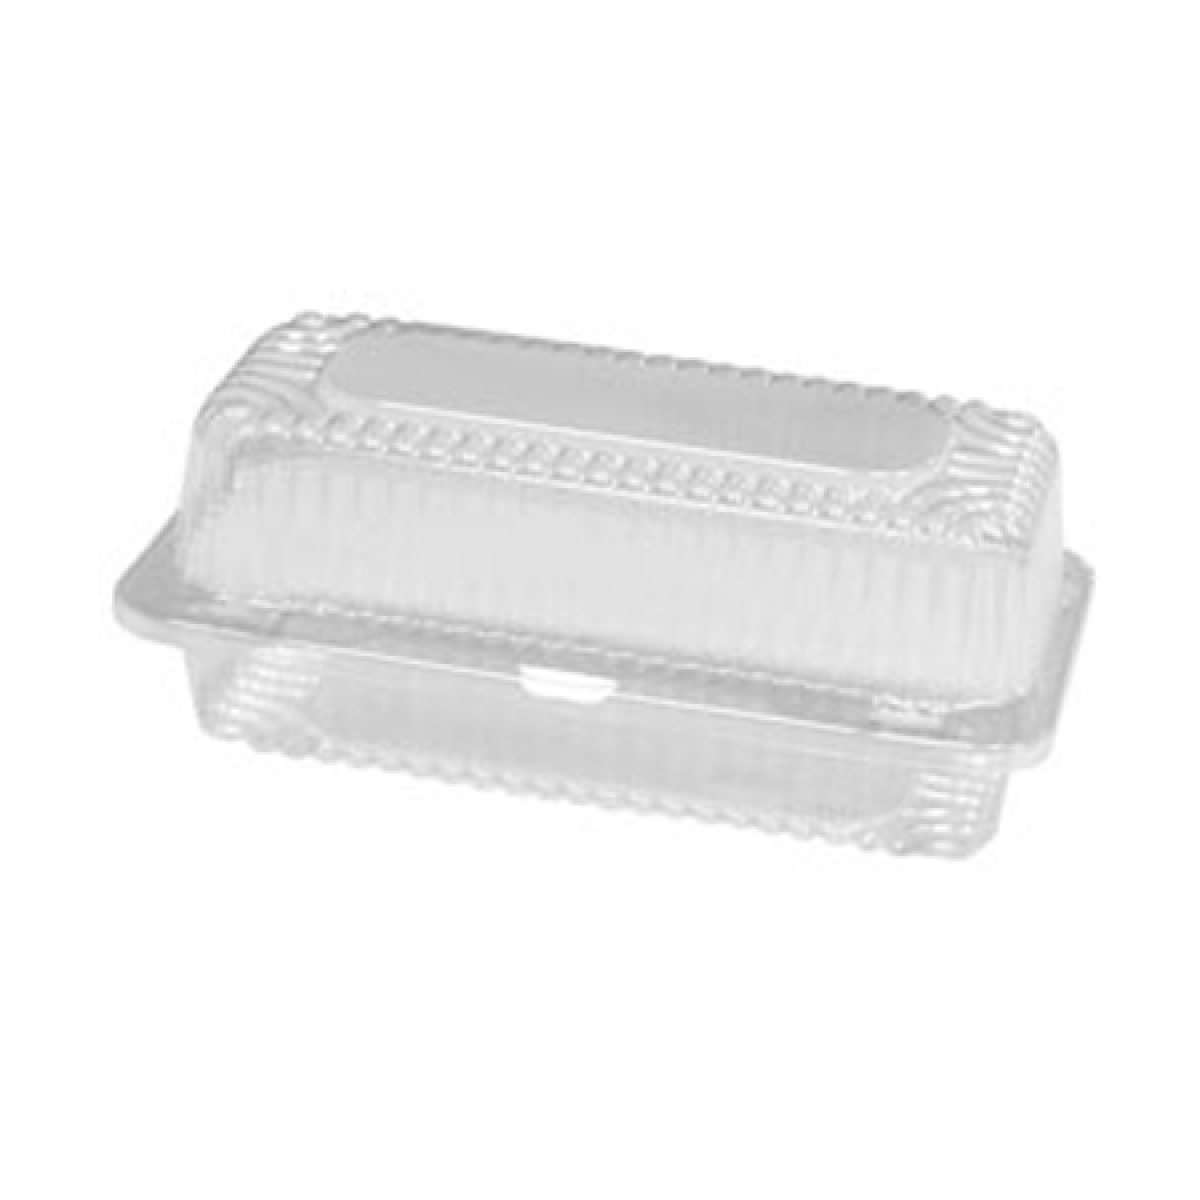 clear rectangular plastic container with hinged dome lid  163*116*55